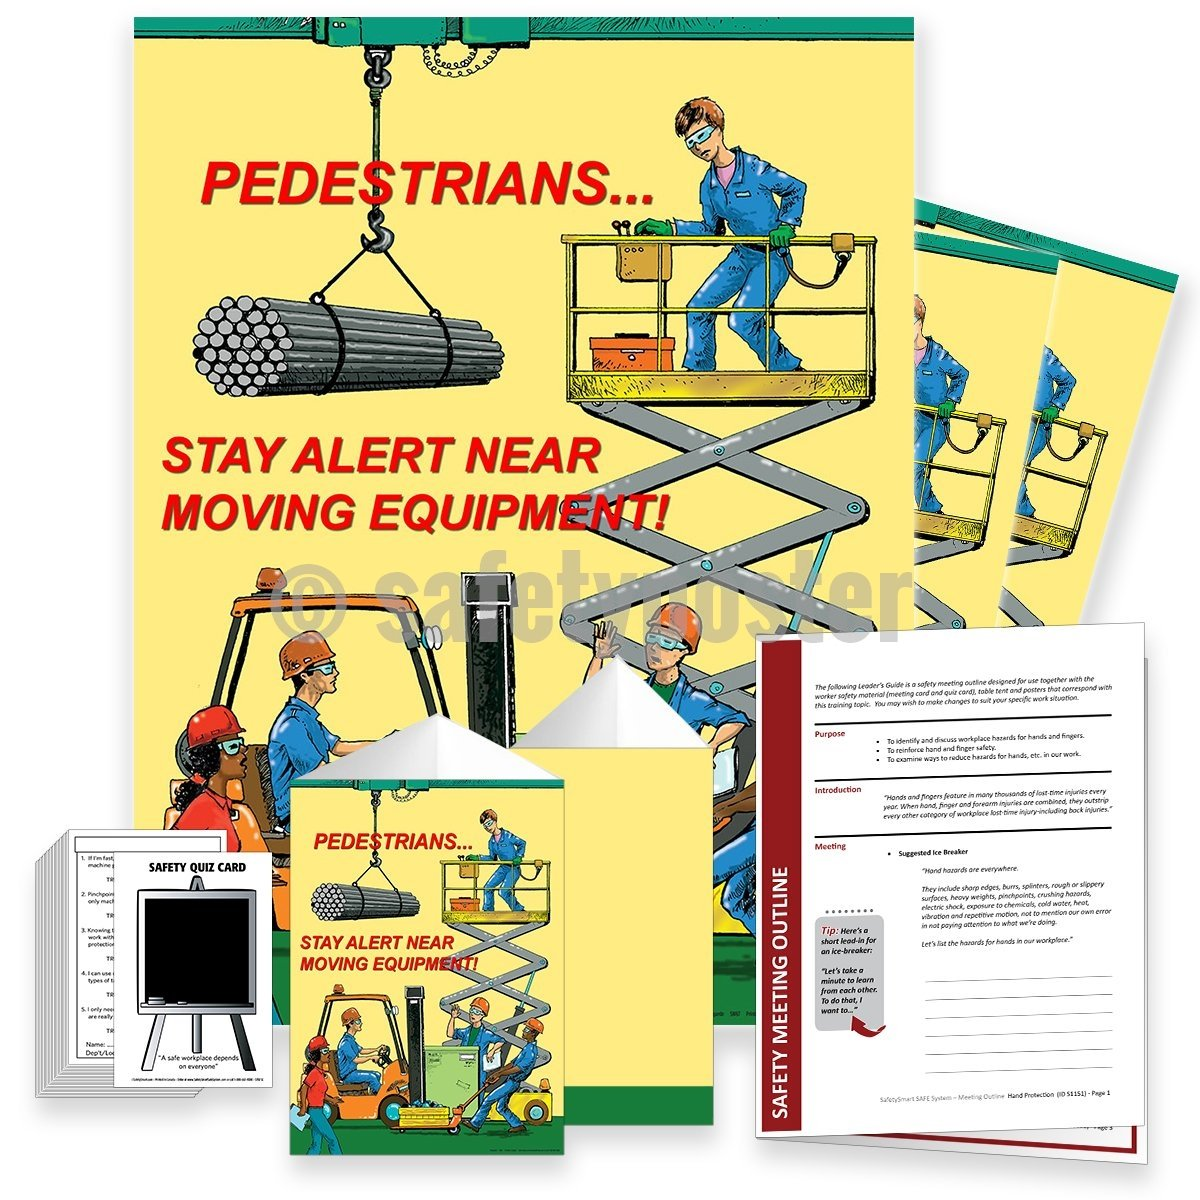 Safety Meeting Kit - Pedestrians Stay Alert Near Morving Equipment Kits